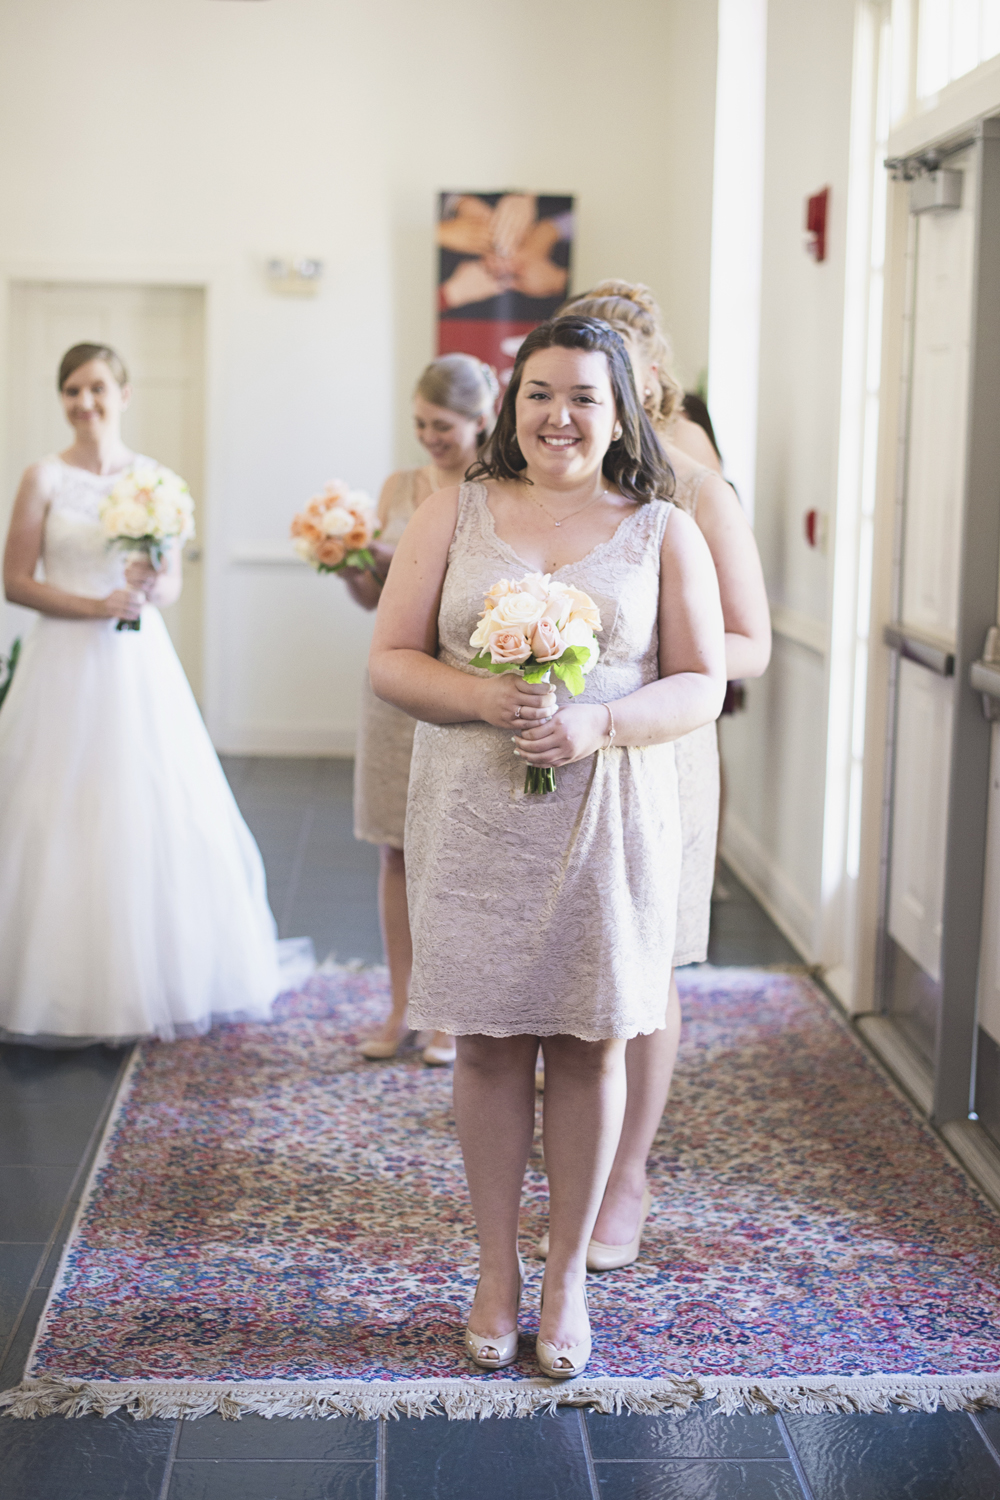 Walnut Hills Baptist Church Wedding in Williamsburg, Virginia | Wedding ceremony